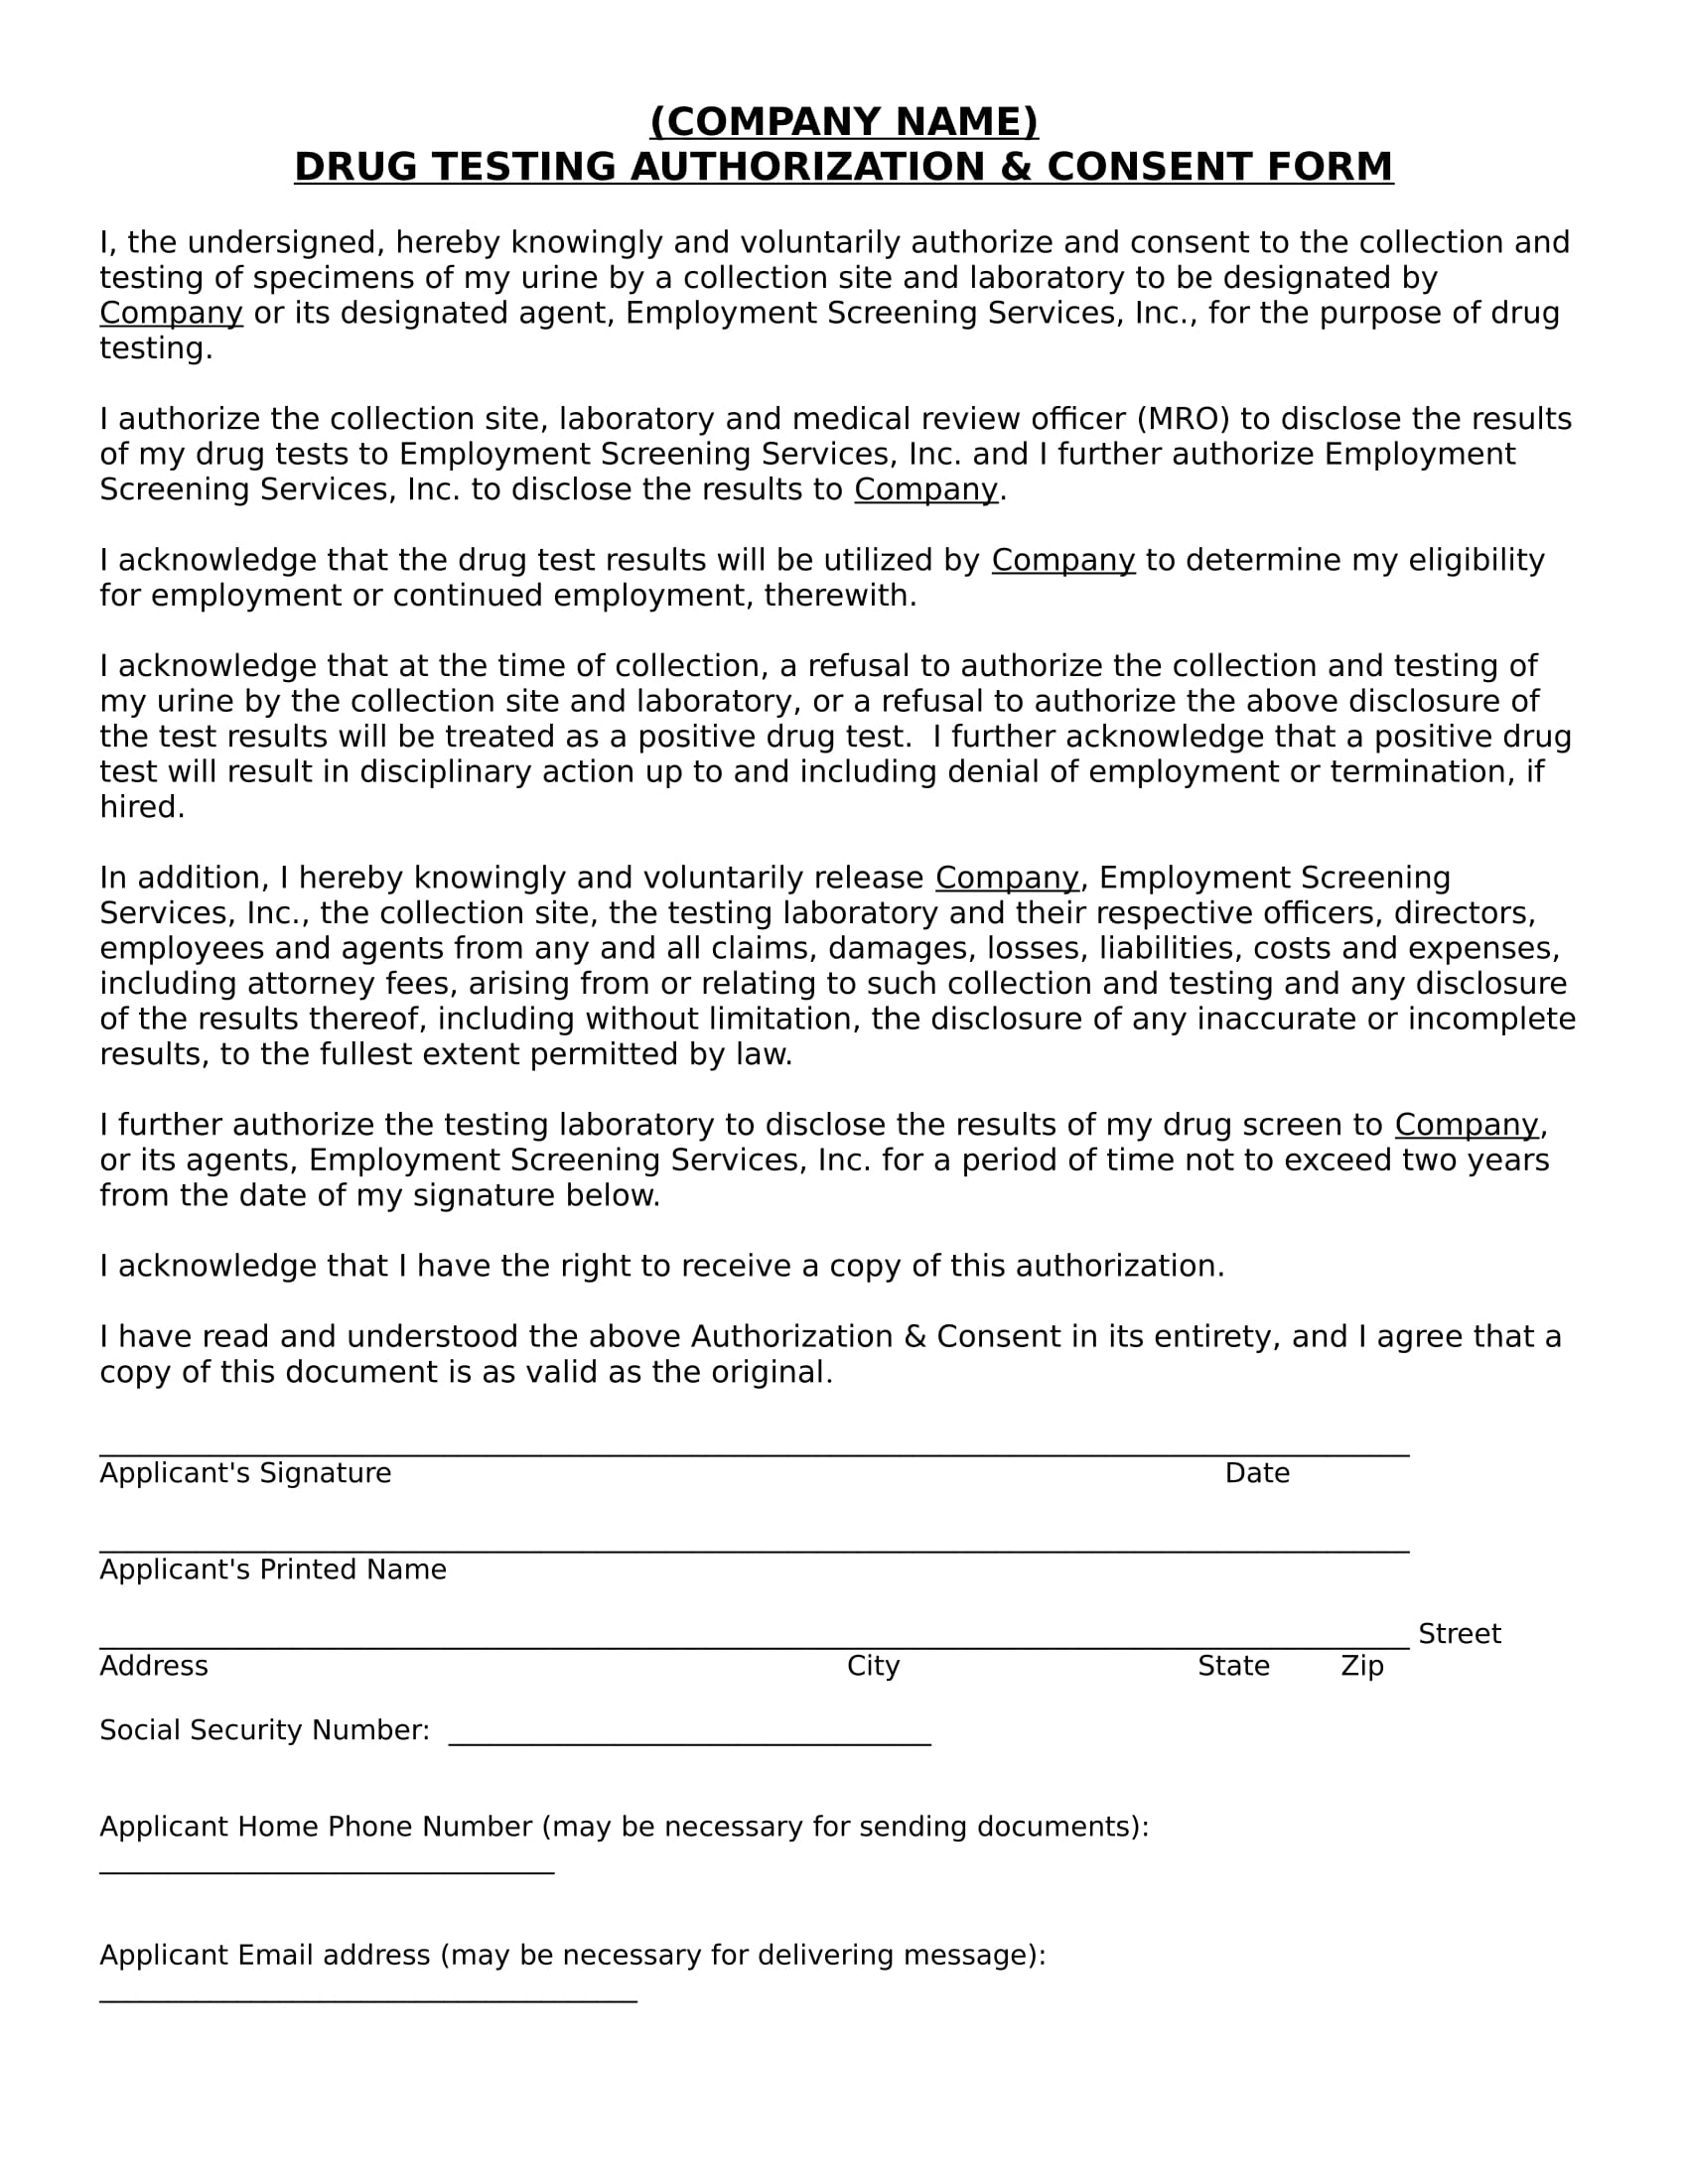 drug test authorization consent form 1